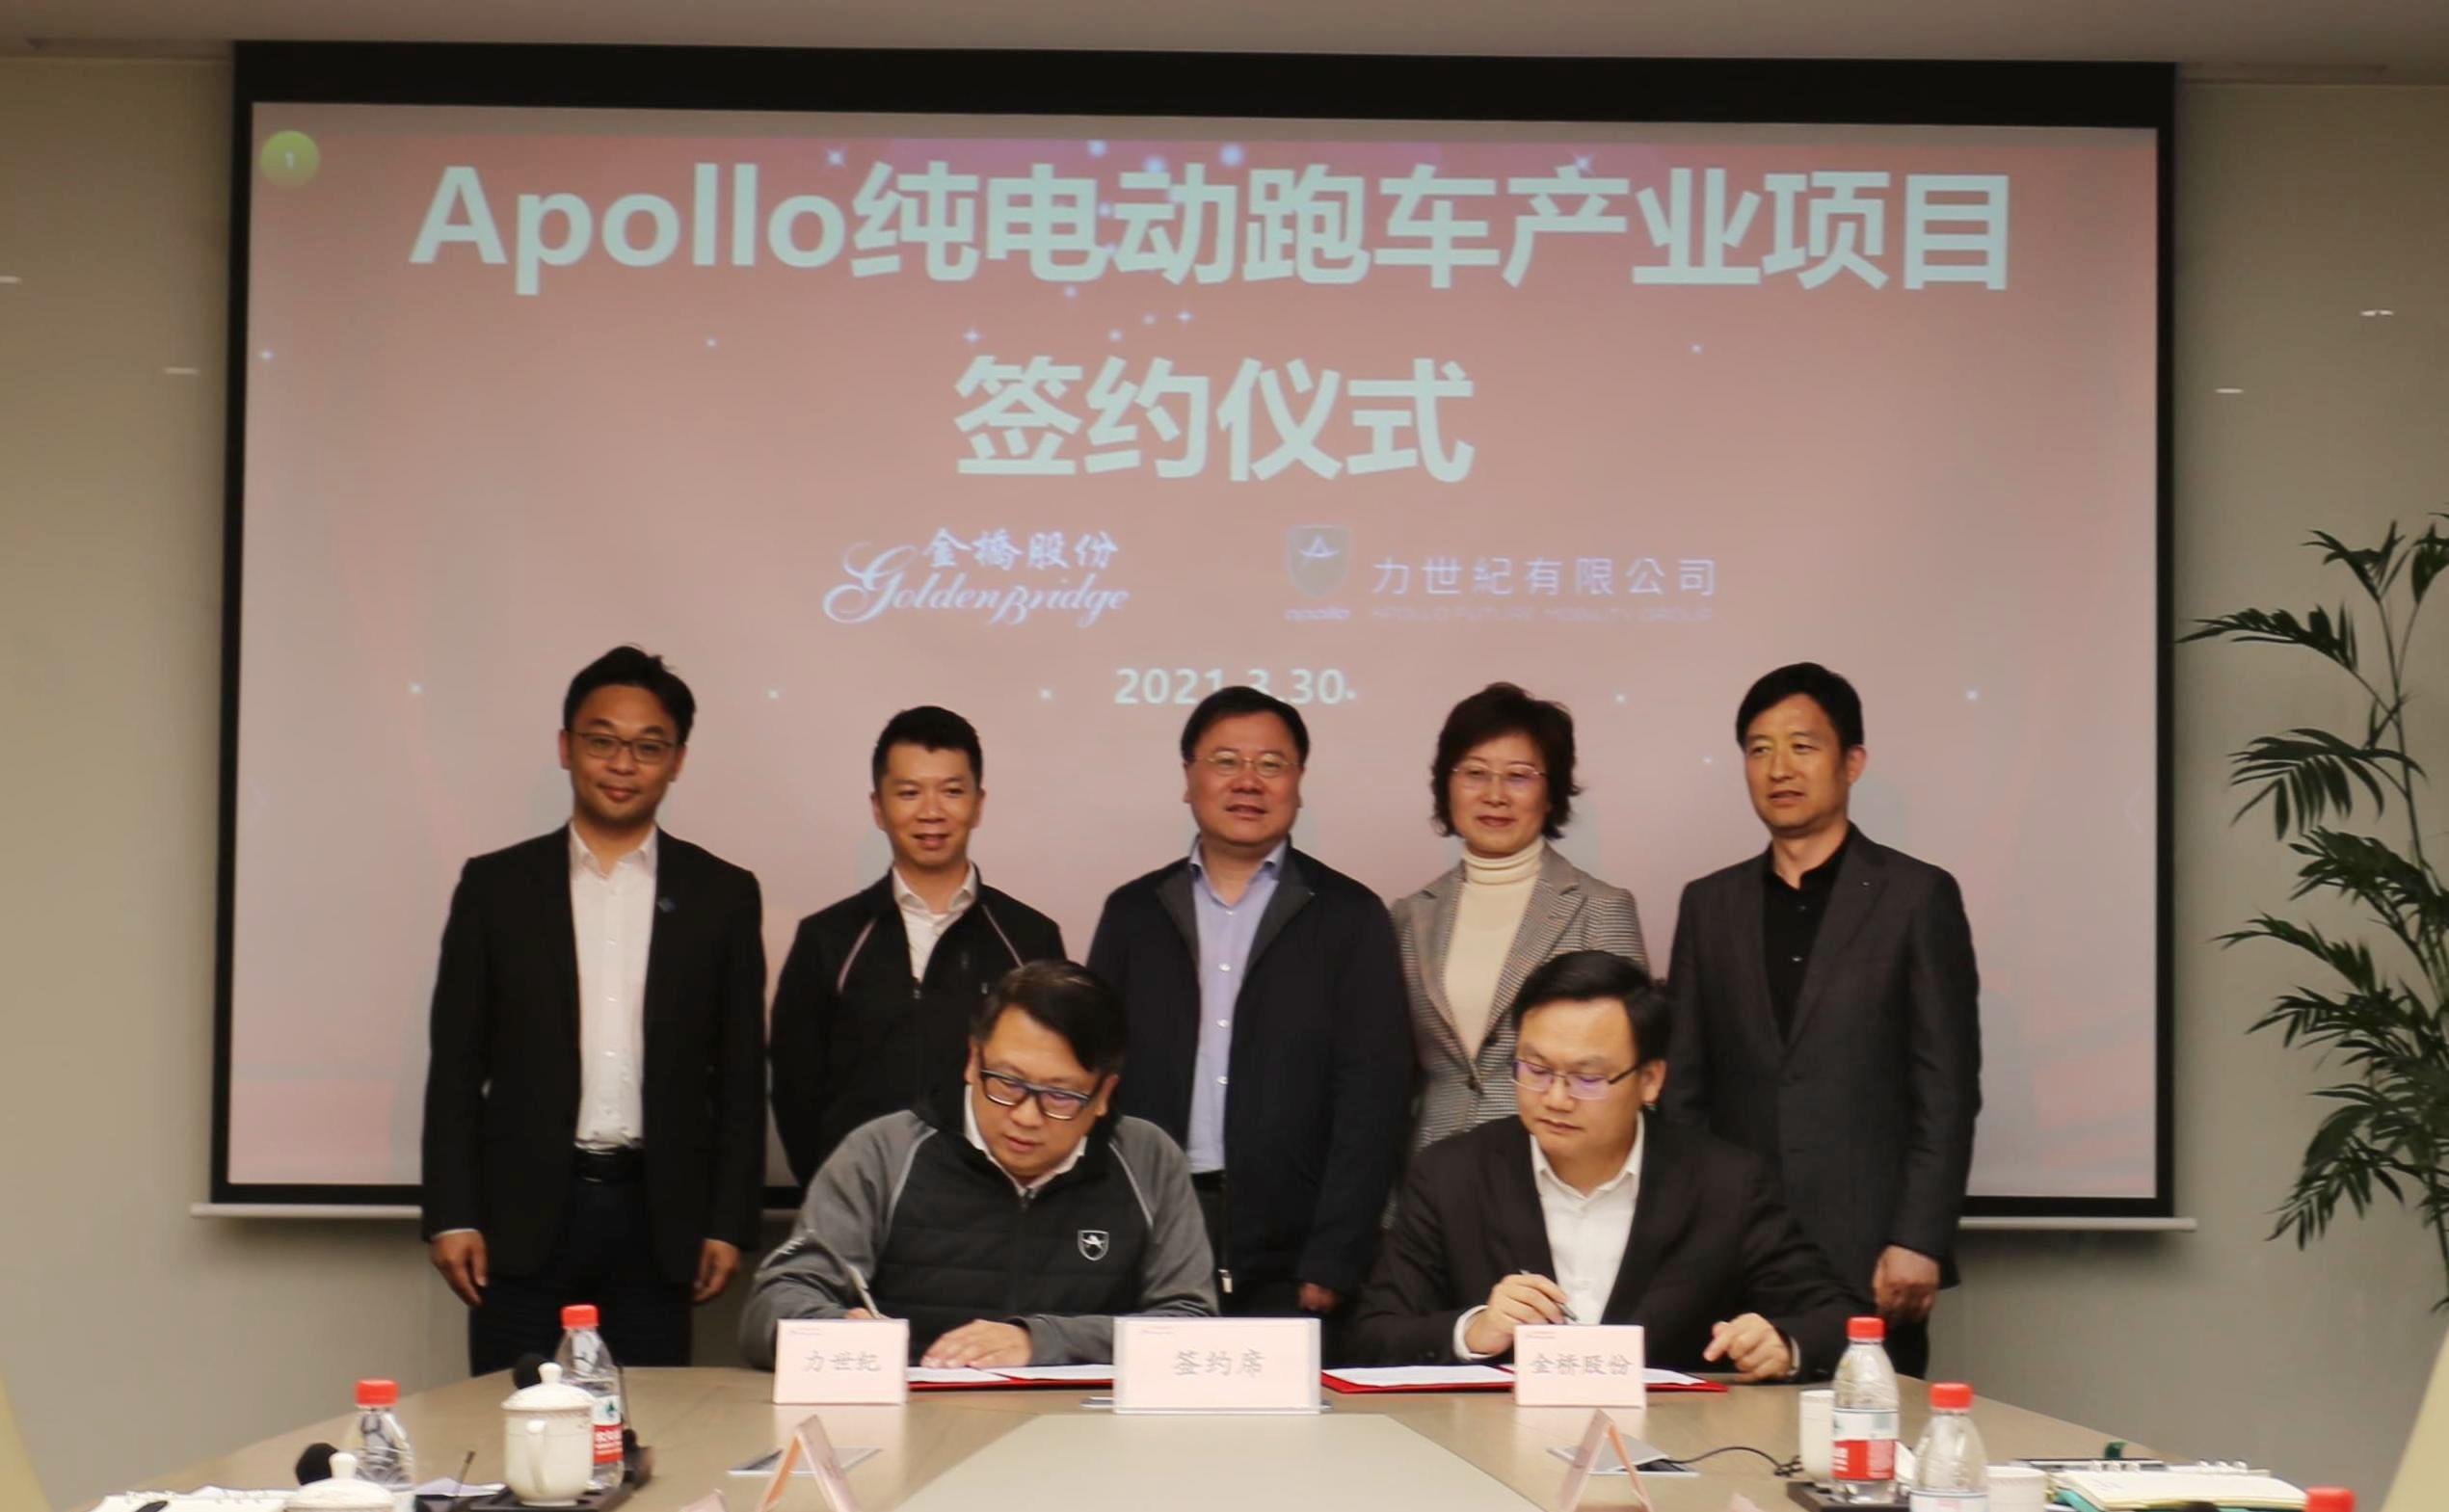 AFMG Announces Signing of Cooperation Framework Agreement with Shanghai Jinqiao